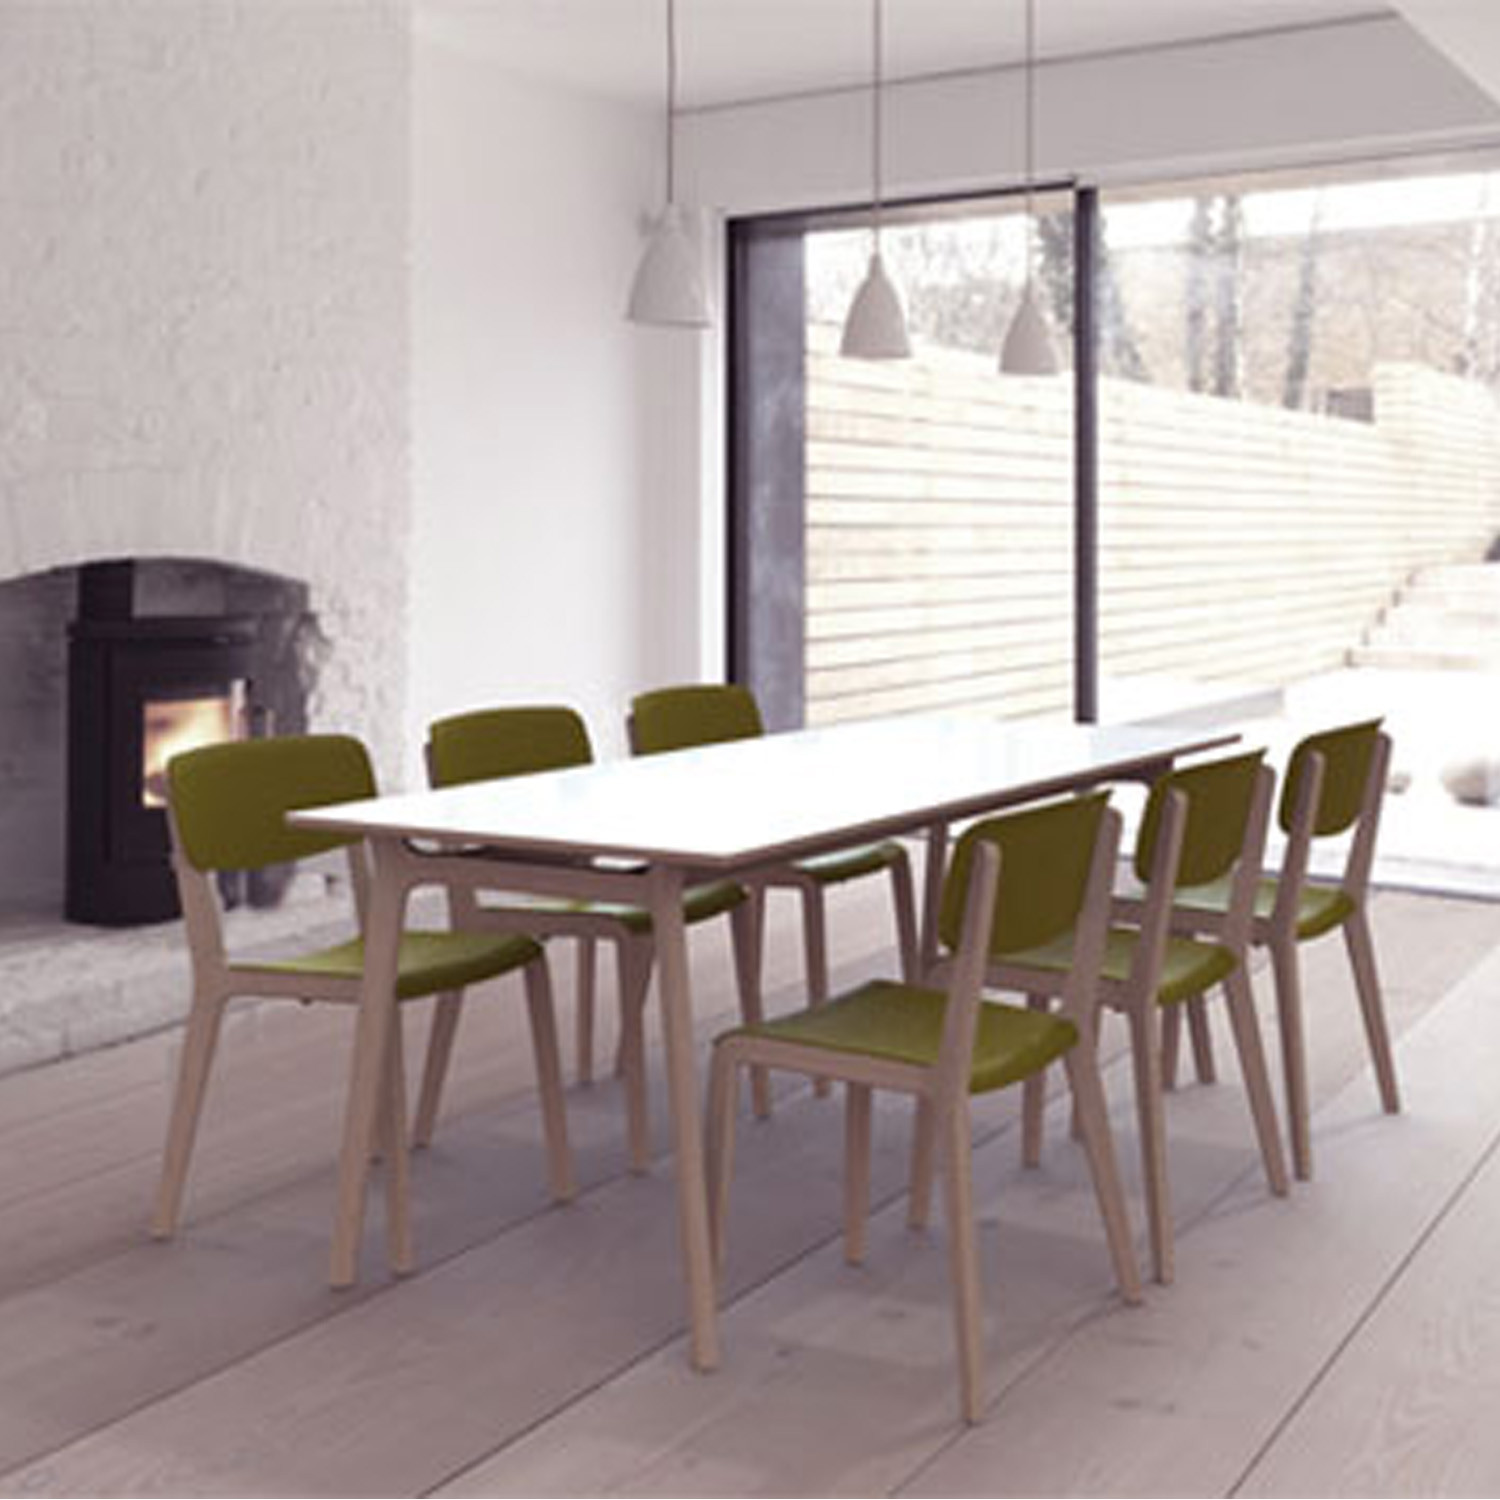 Jonty Stacking Dining Chairs + Jonty Table